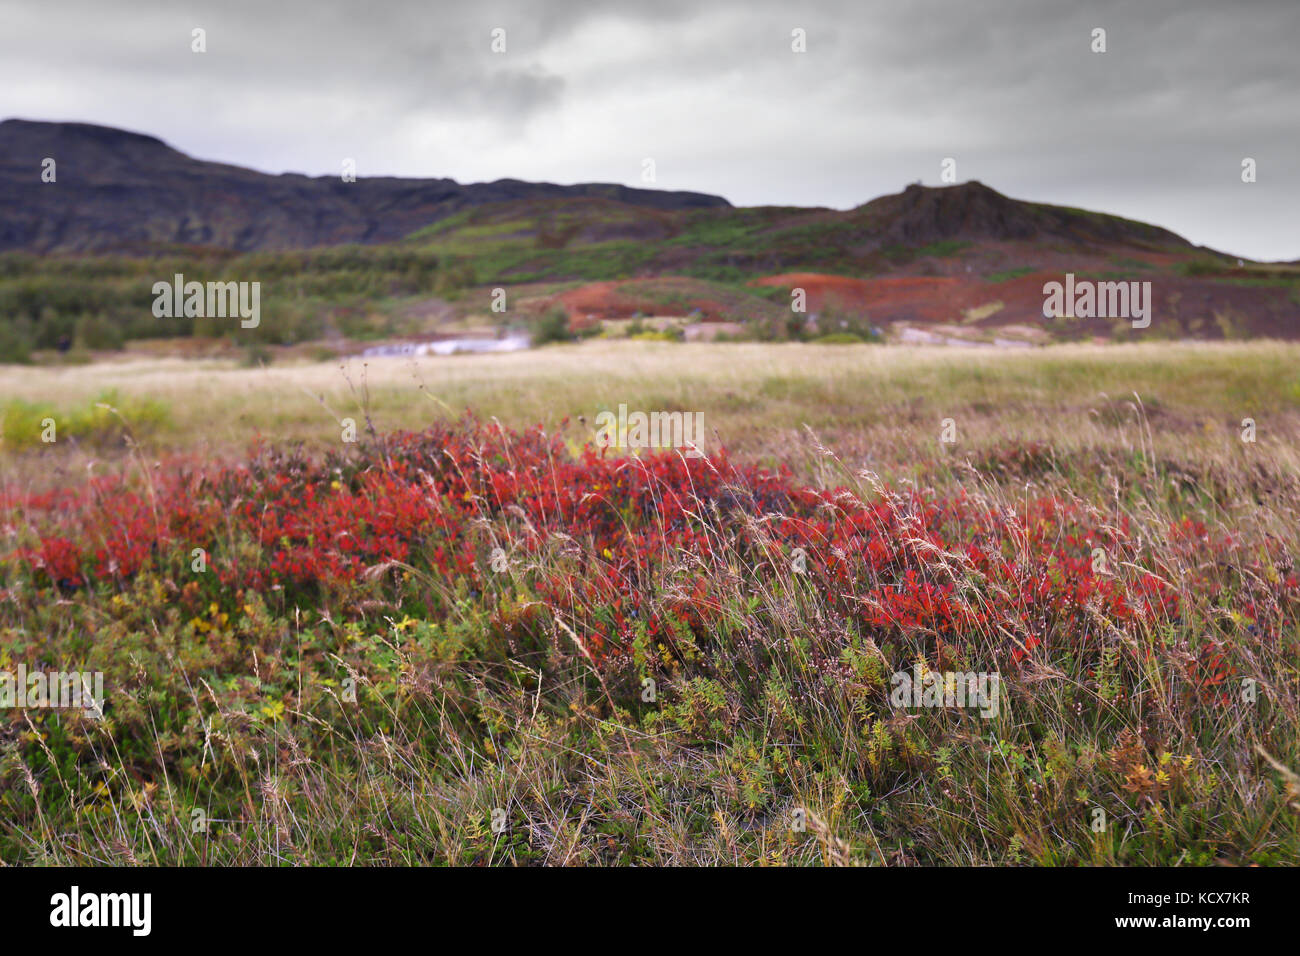 Colorful fields with flowers in Iceland - Stock Image